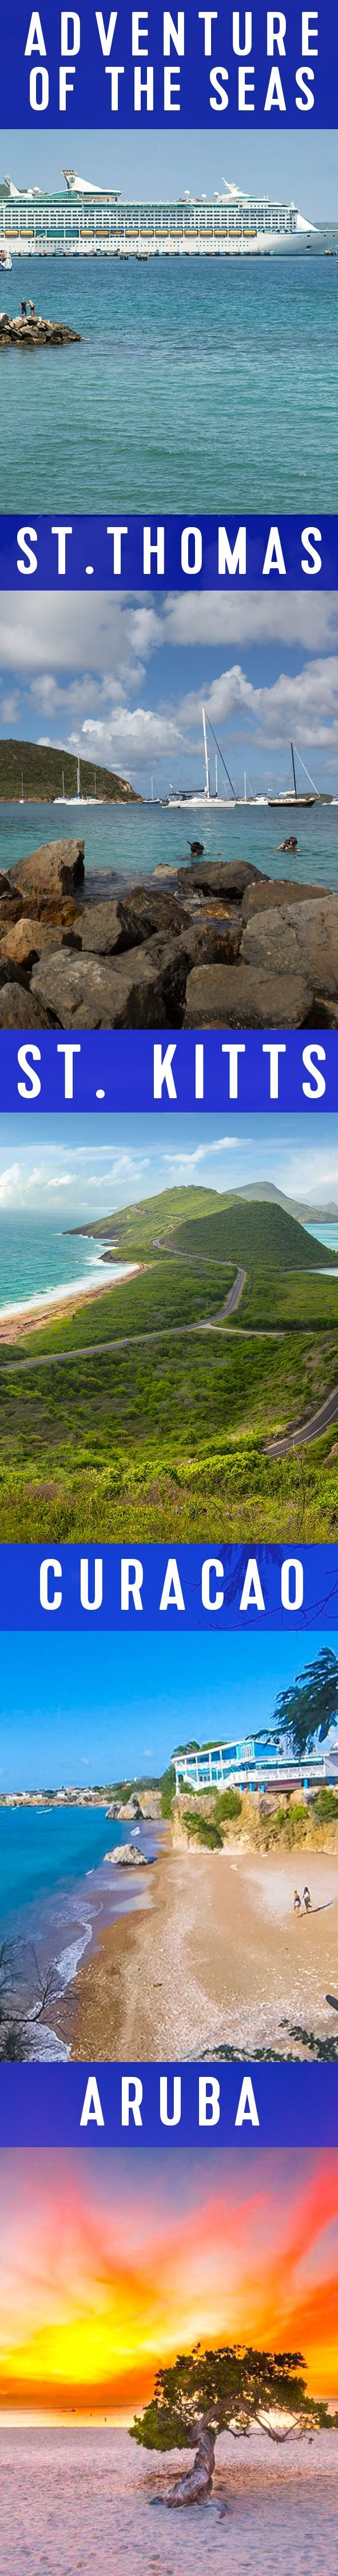 Adventure of the Seas 7 Night Cruise | Five adventurous destinations in seven nights. Sail from historic San Juan through the Southern Caribbean, making stops in glitzy St. Thomas, tropical St. Kitts, rugged Curacao, and sunny Aruba. Cruise with Royal Caribbean and see every side of these unique locales. (Photo credit Aruba: Sophie; Photo credit Curacao: Irie Tours Curacao)